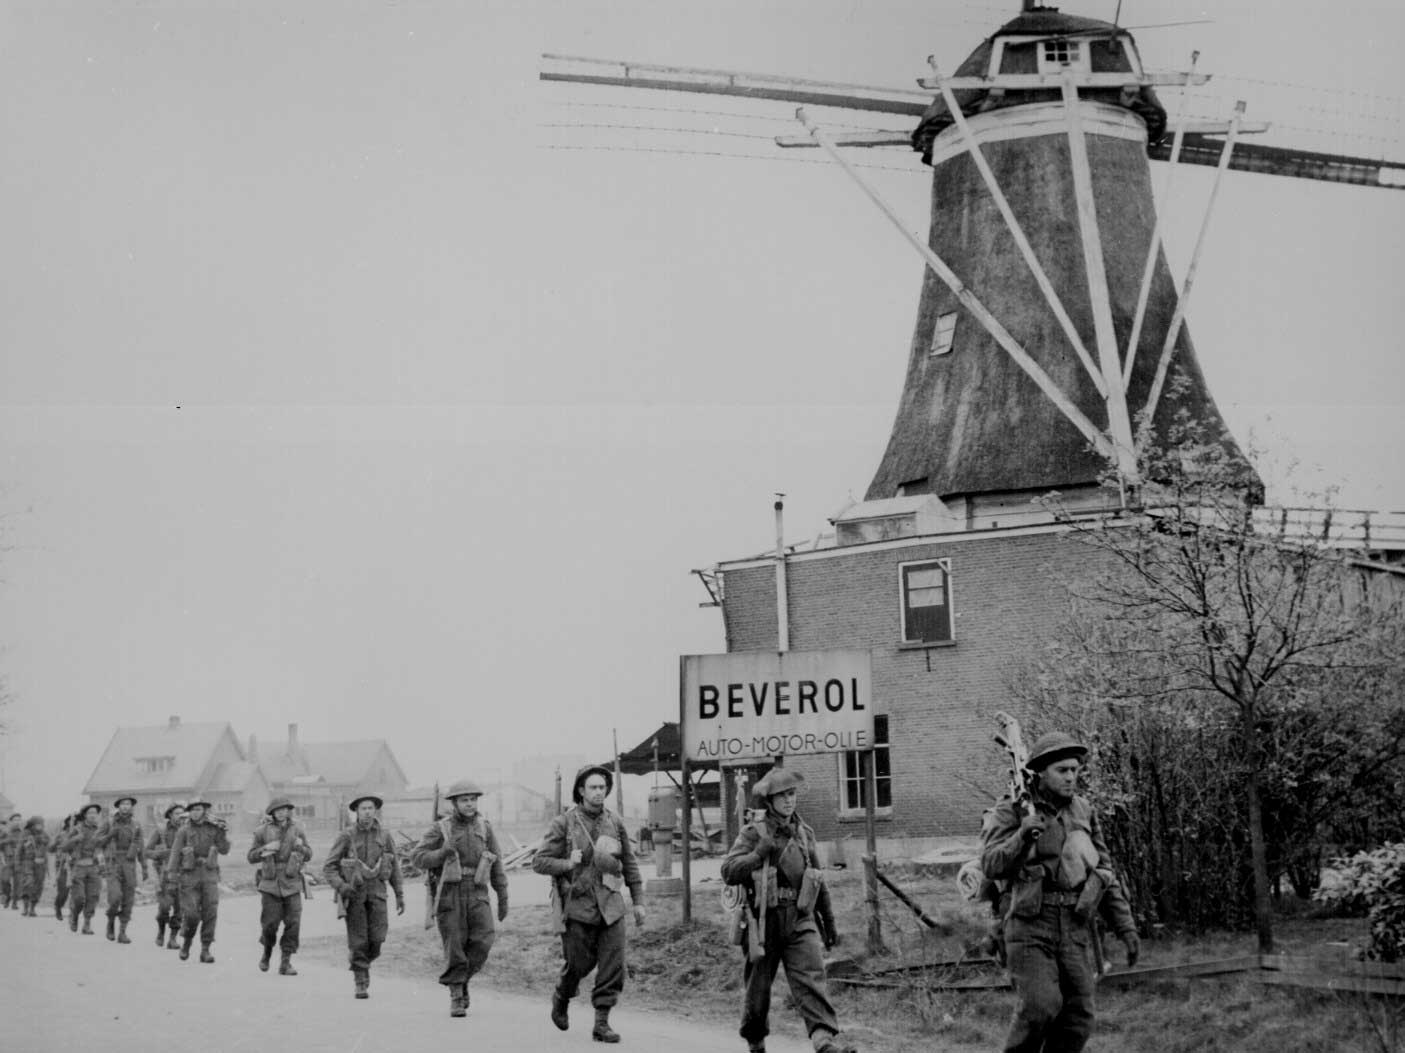 Canadian Infantry of the Regiment de Maisonneuve, moving through Holten, the Netherlands, 9 Apr 1945 (US National Archives: 306-NT-1334B-11)